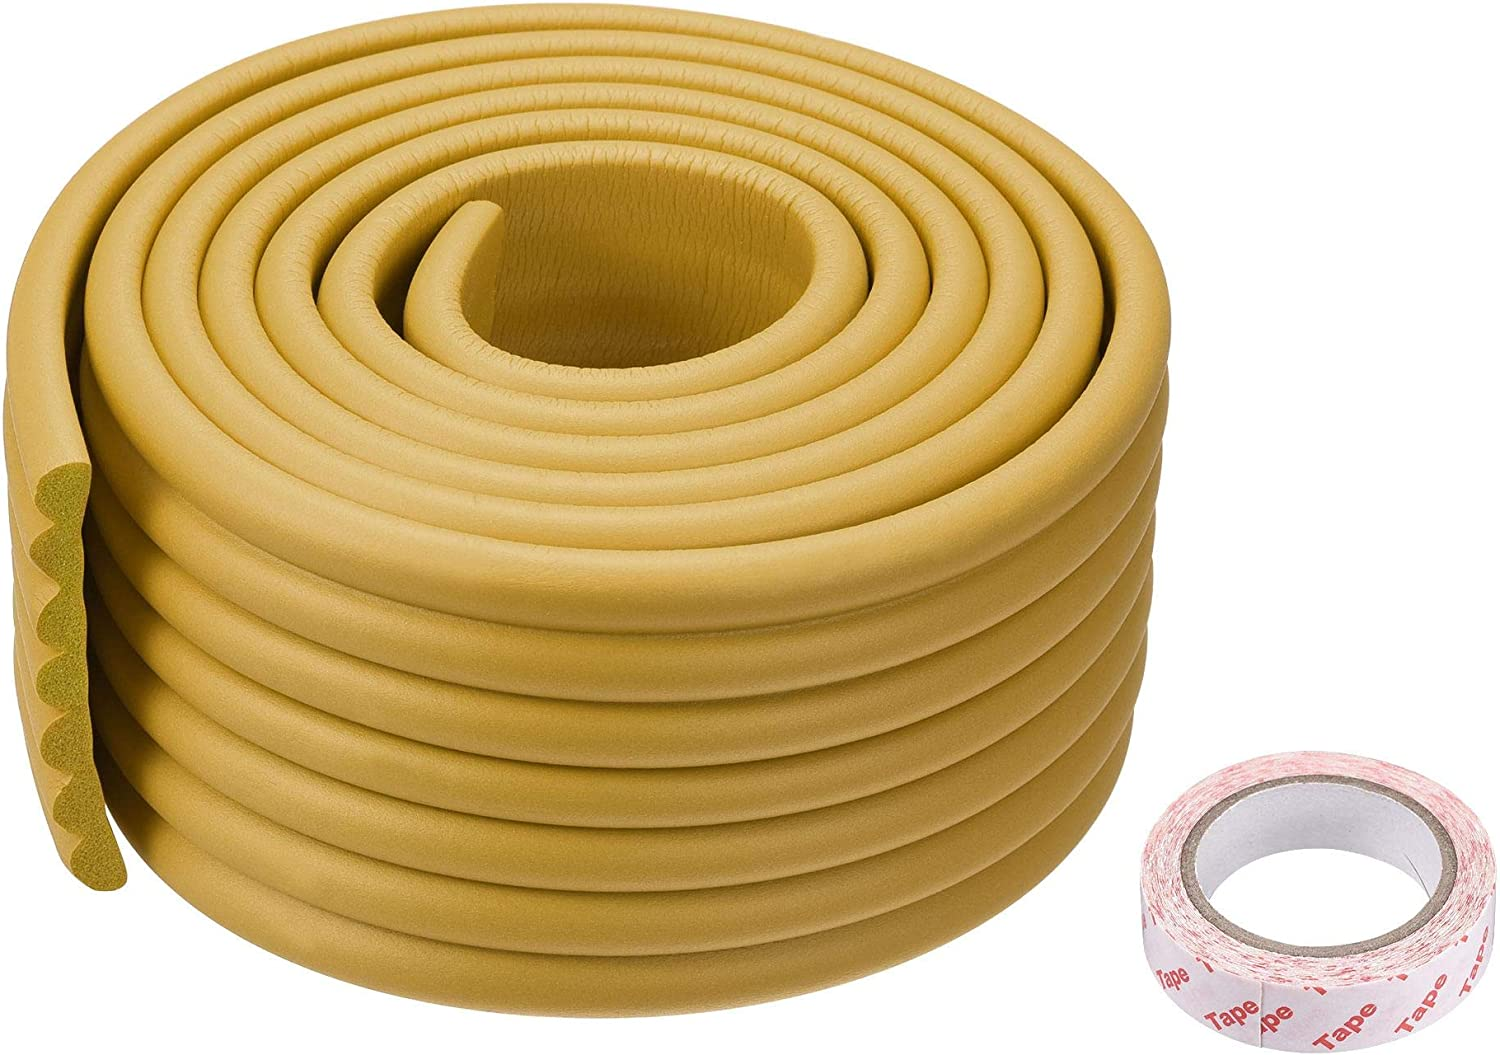 uxcell Furniture Table Edge Protectors W-Shape Soft NBR Anti-collision Strip with Tape, 2 Meters Length Light Wood Color, 2pcs